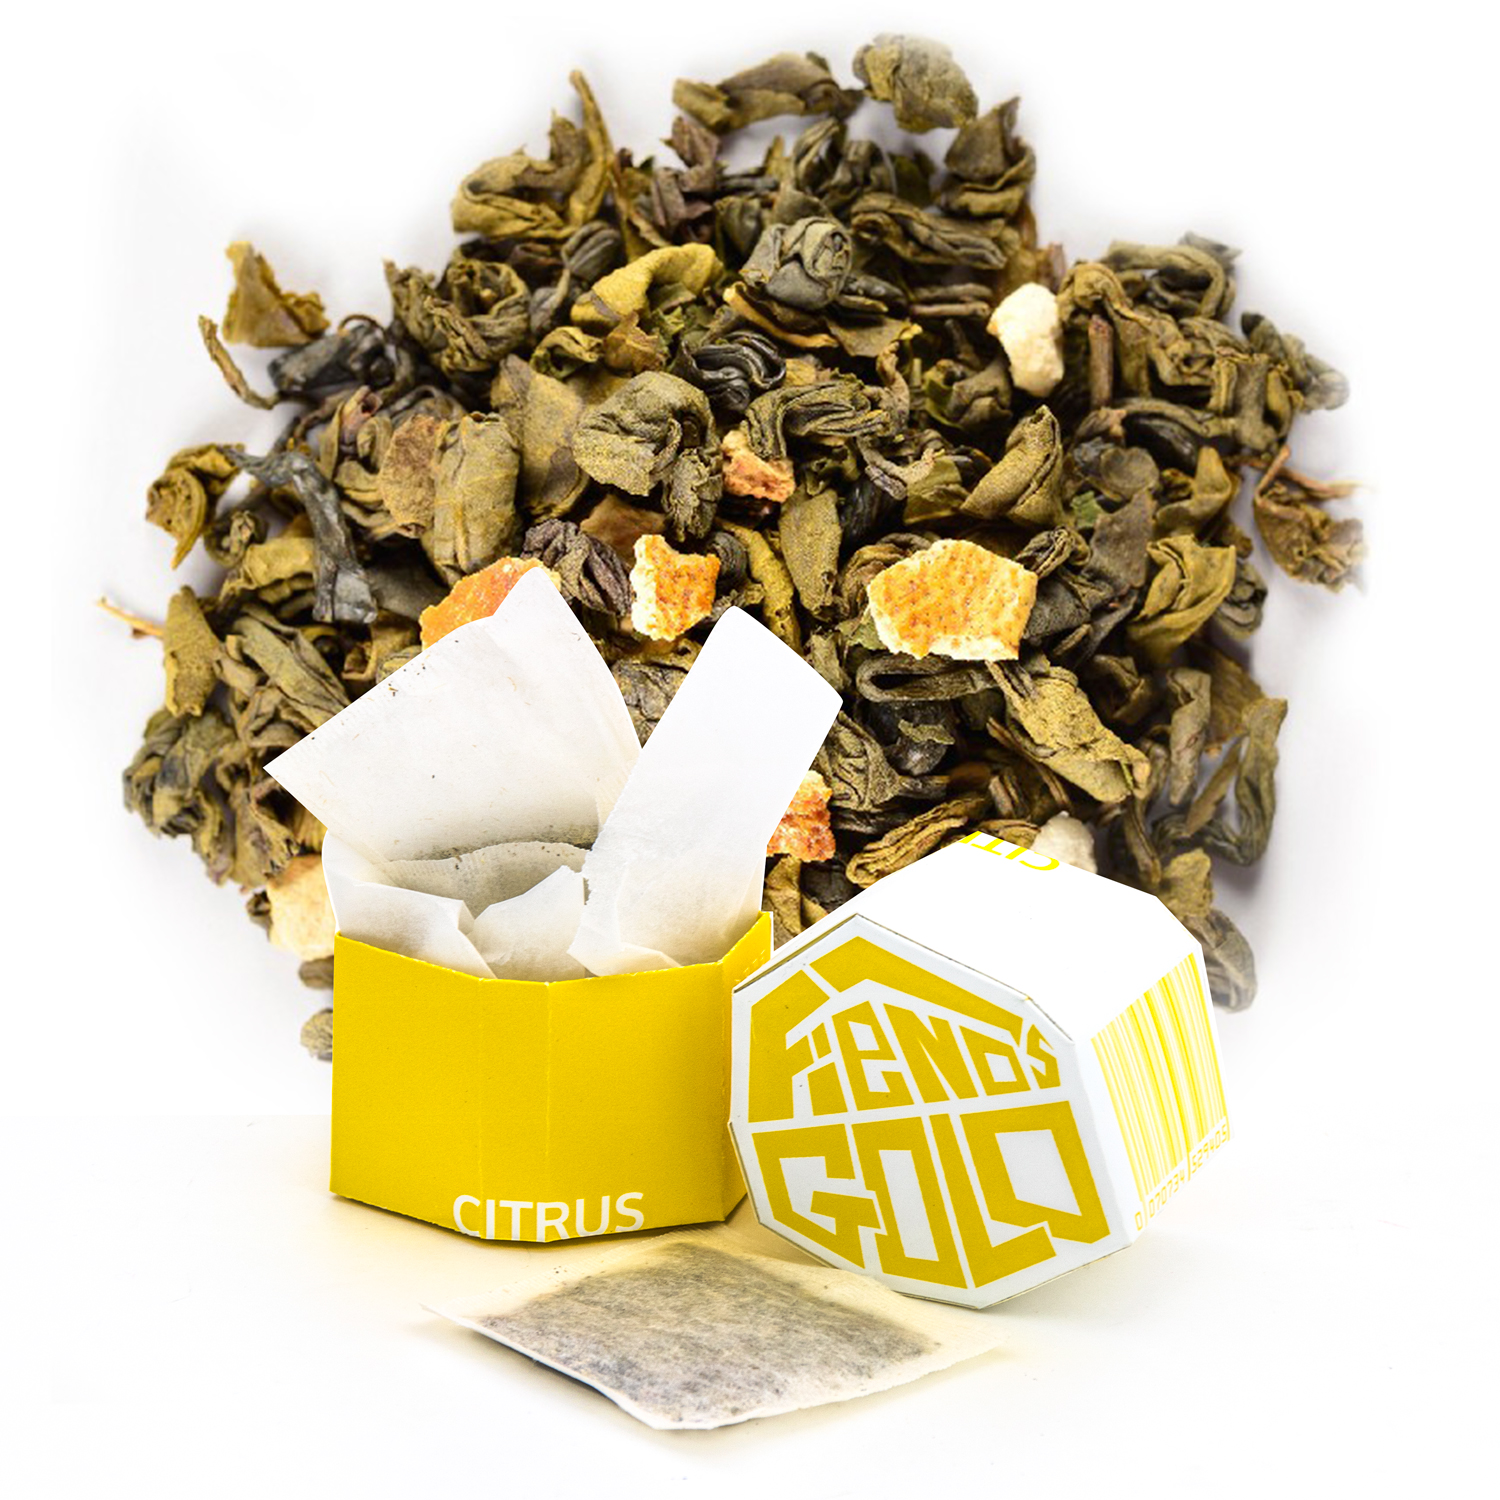 Fiends Gold Branded Tea Collection - Citrus